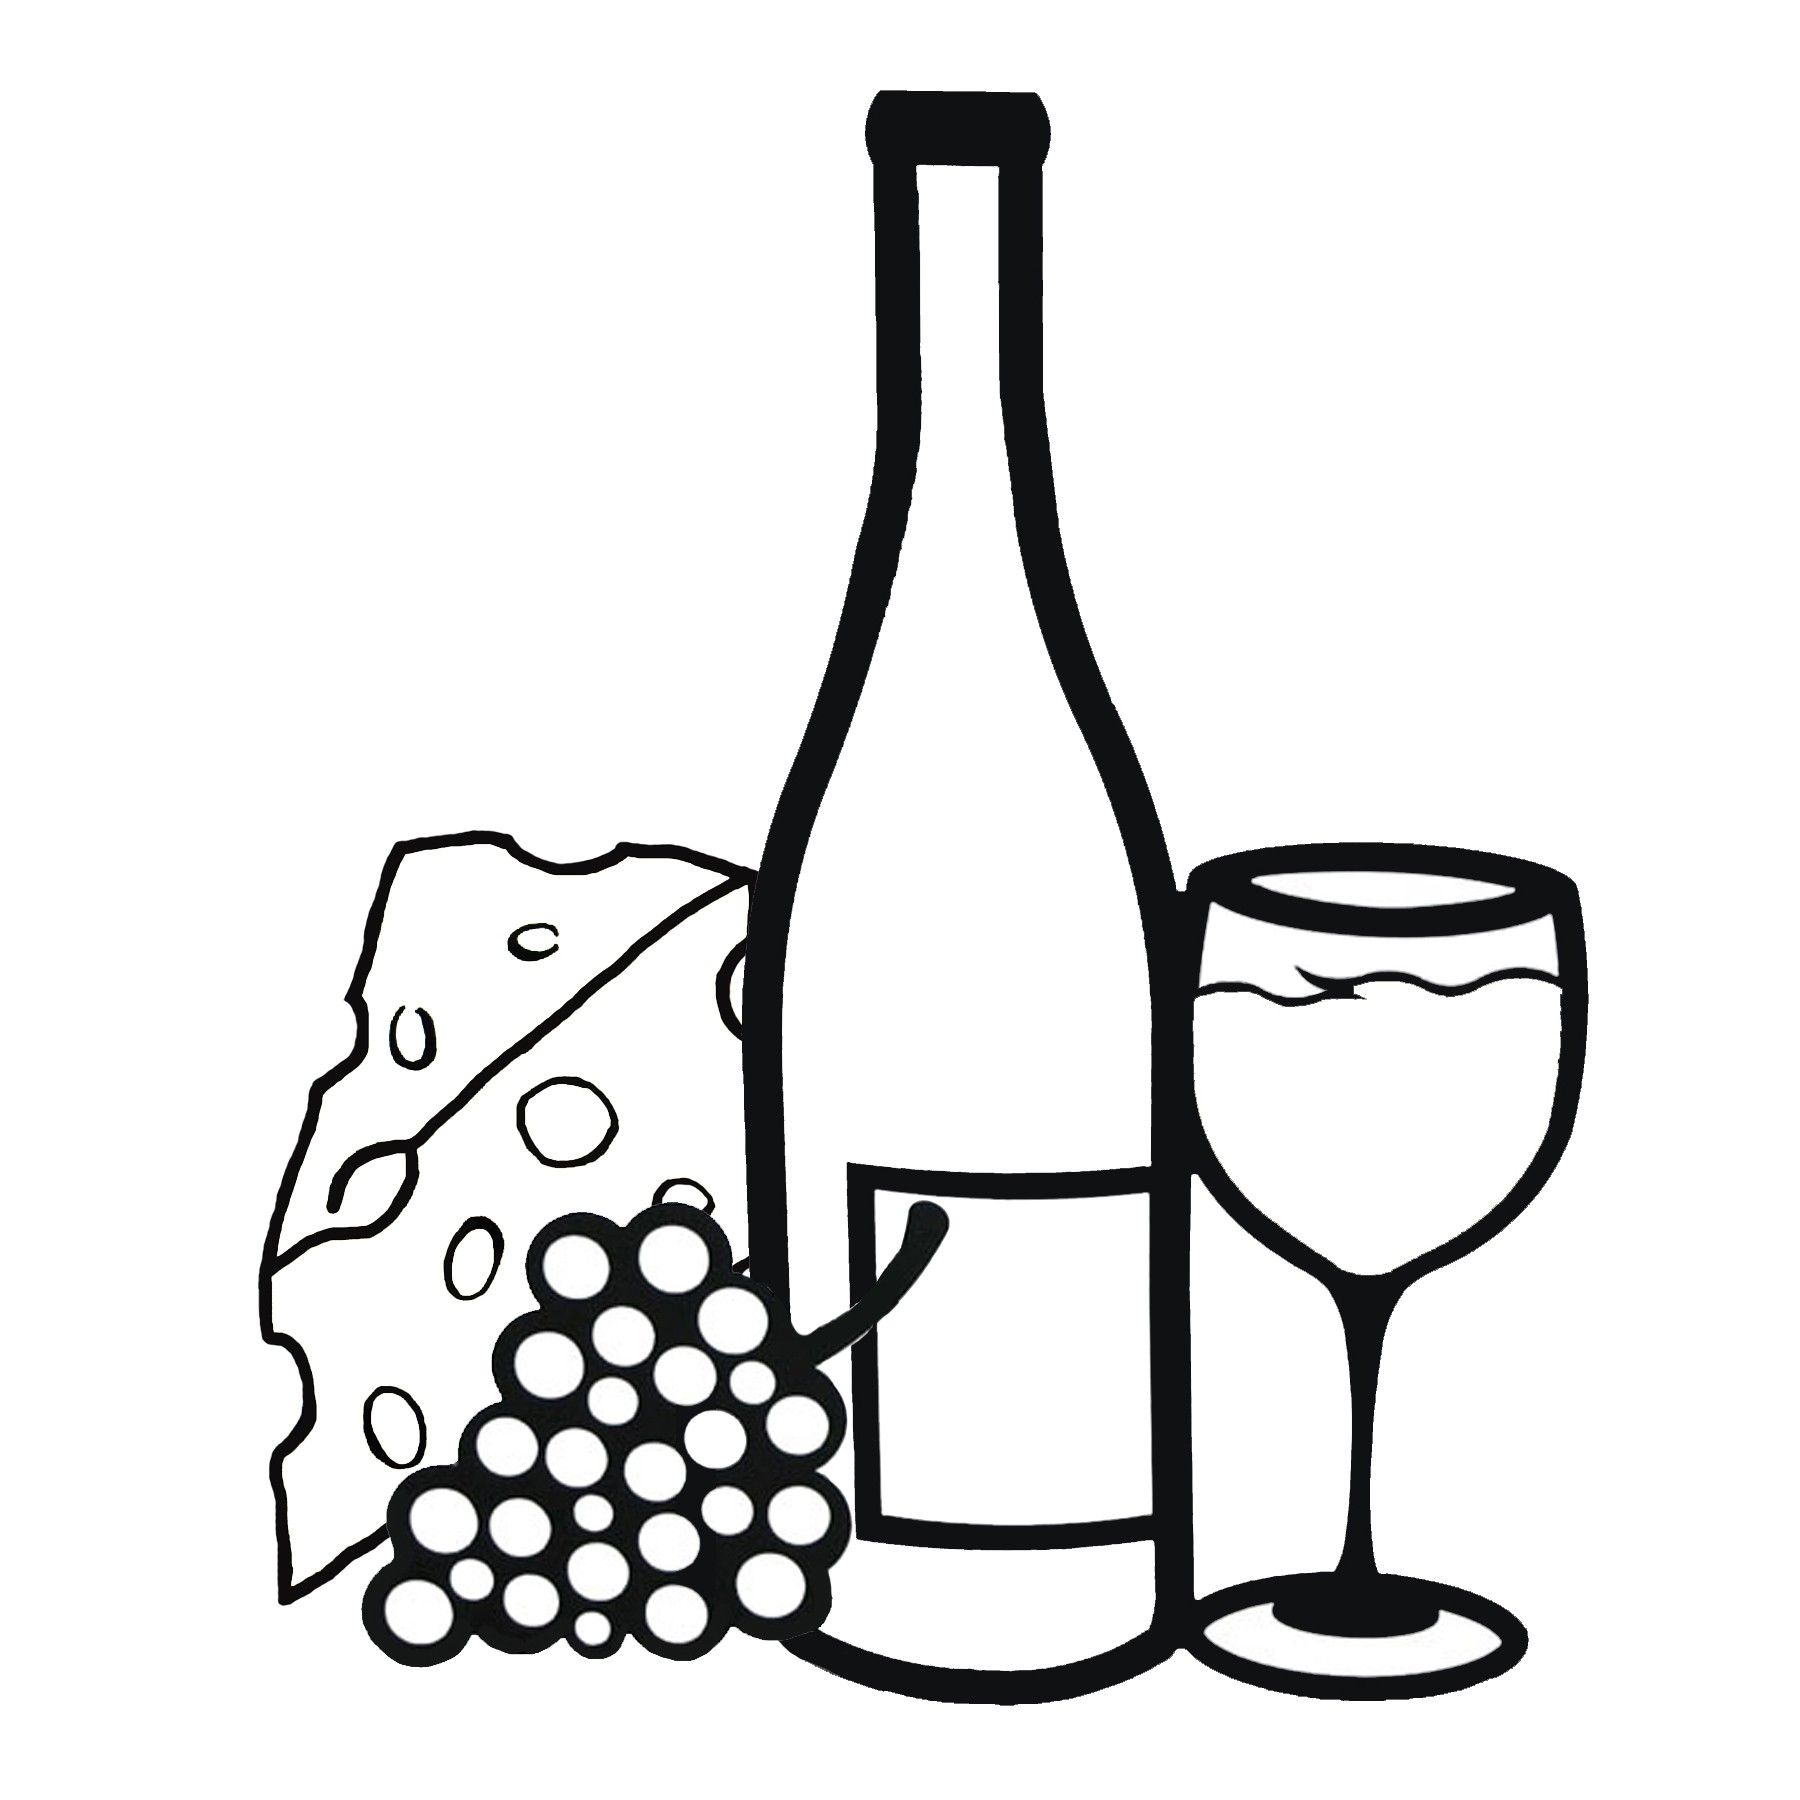 Images For > Wine Glass And Grapes Clipart Wine glass